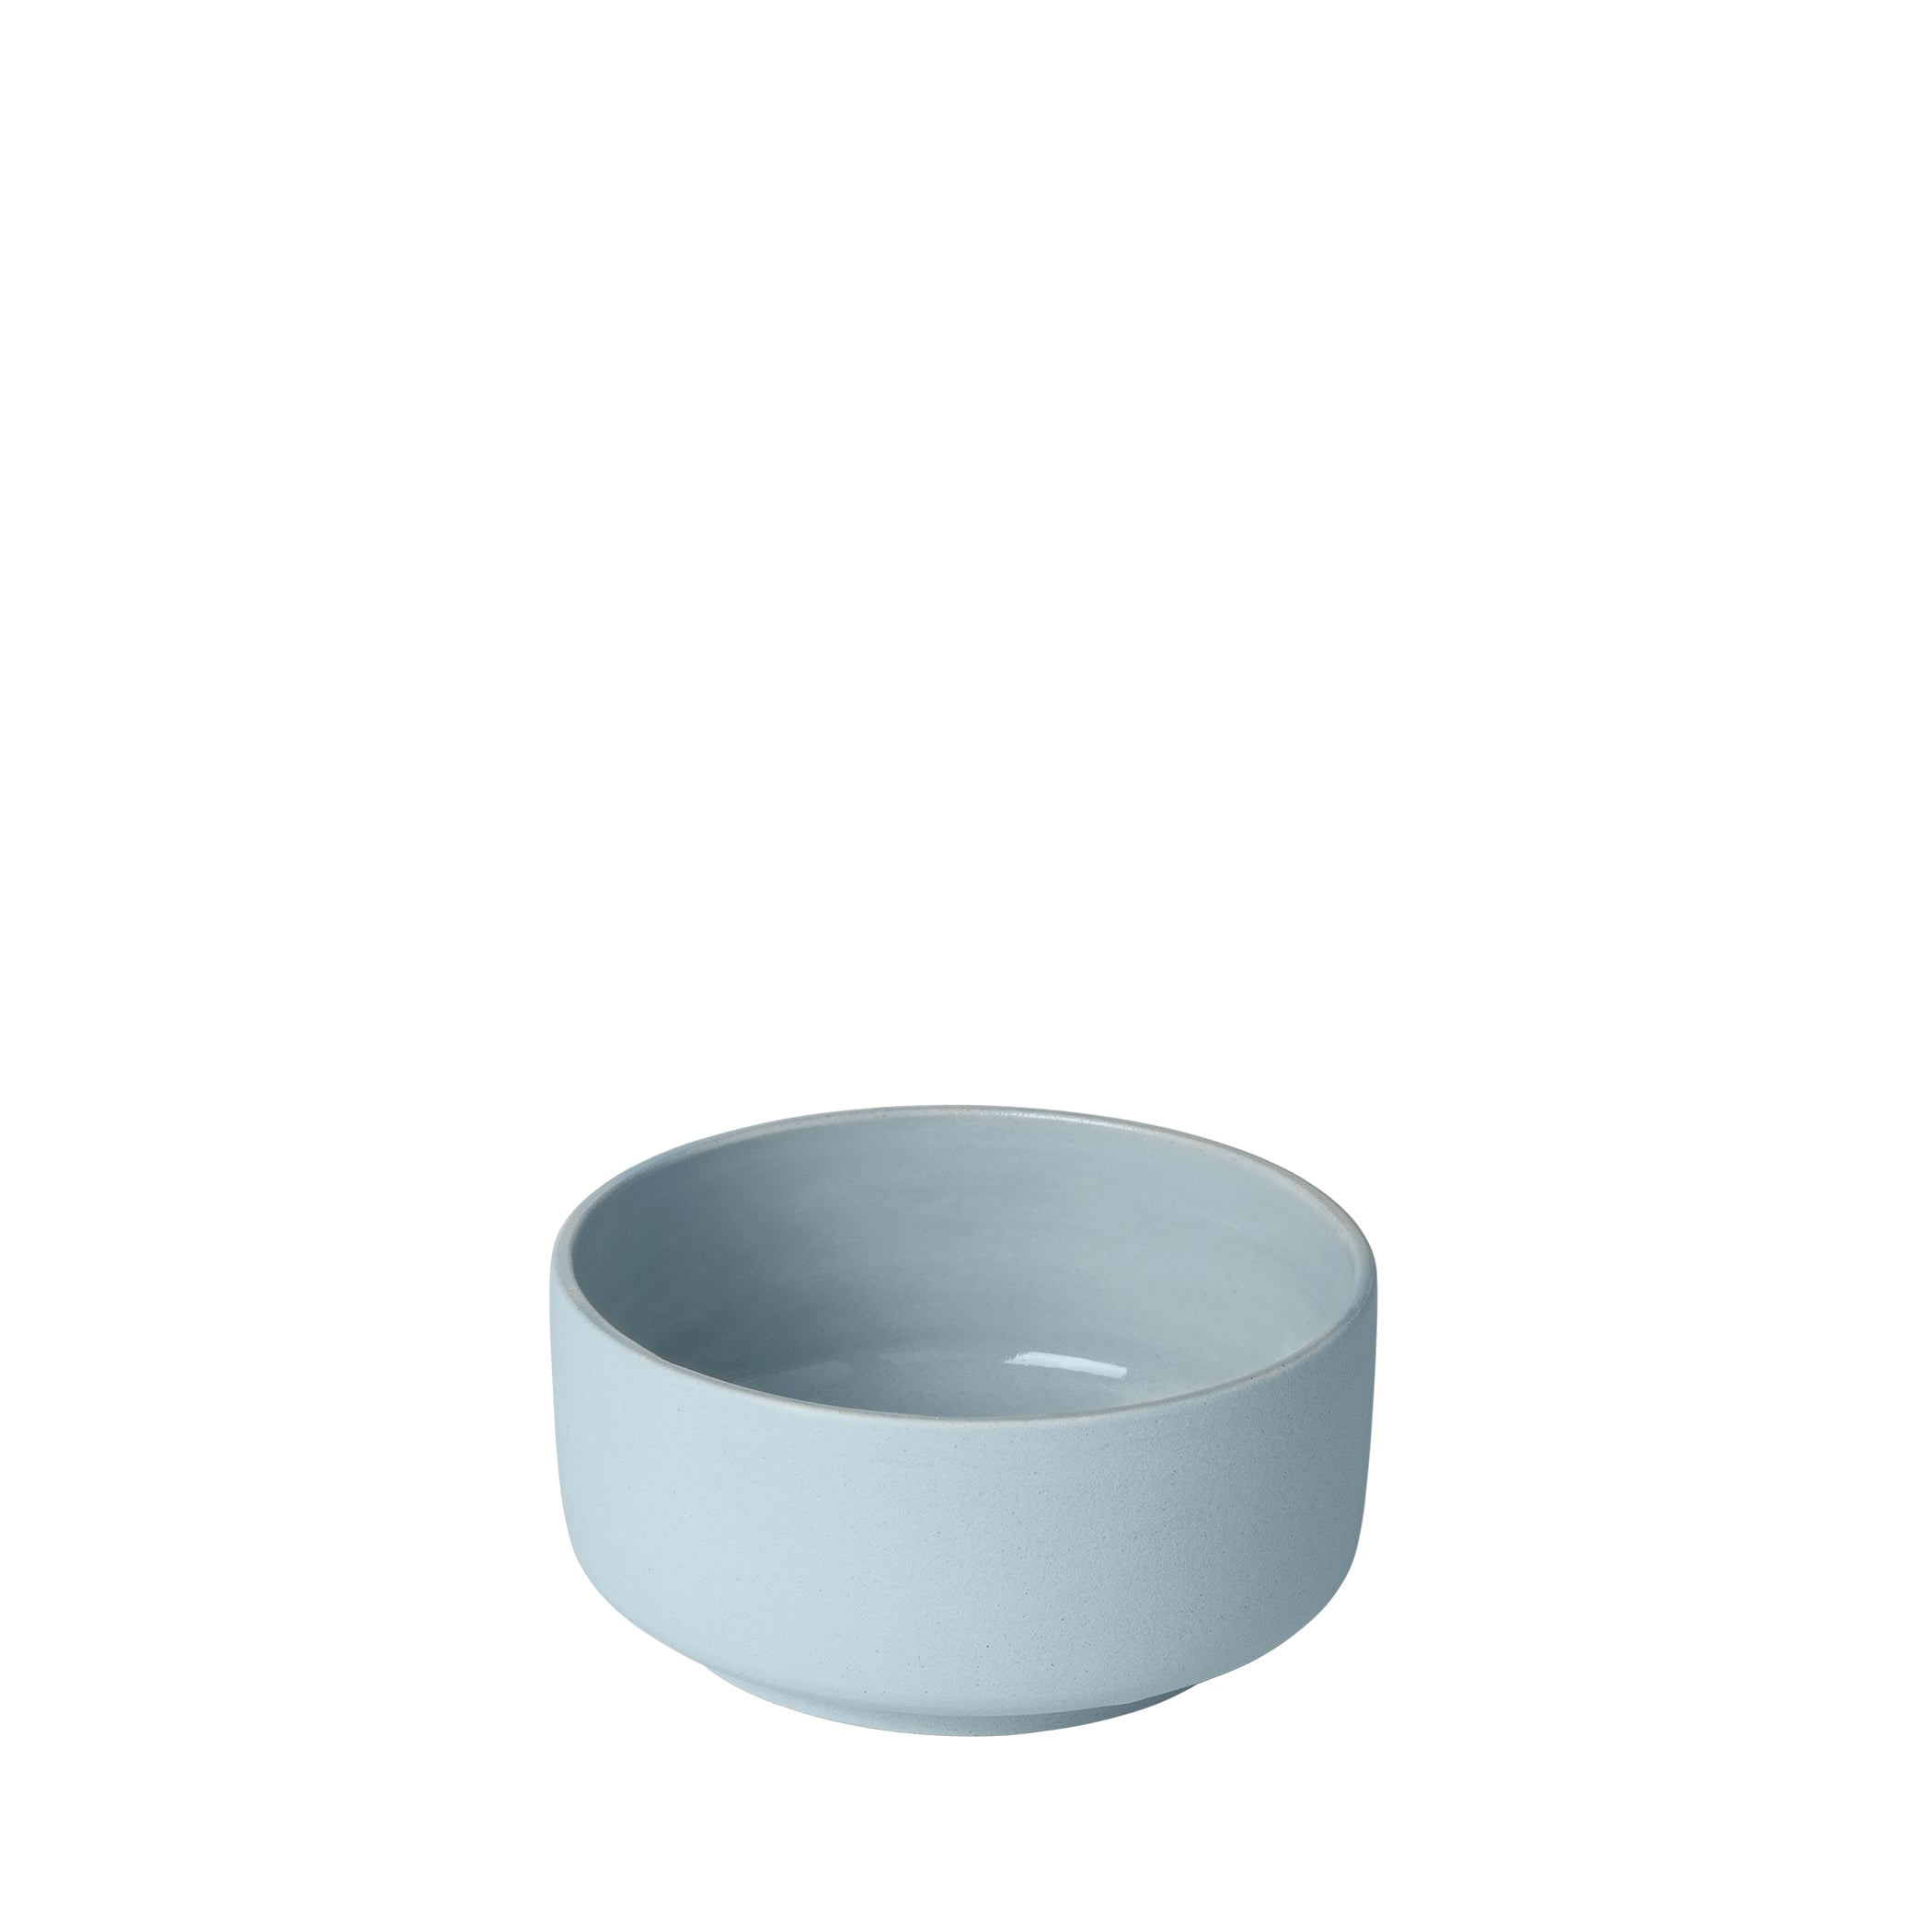 PISU 06 SKY BLUE BOWL ceramic